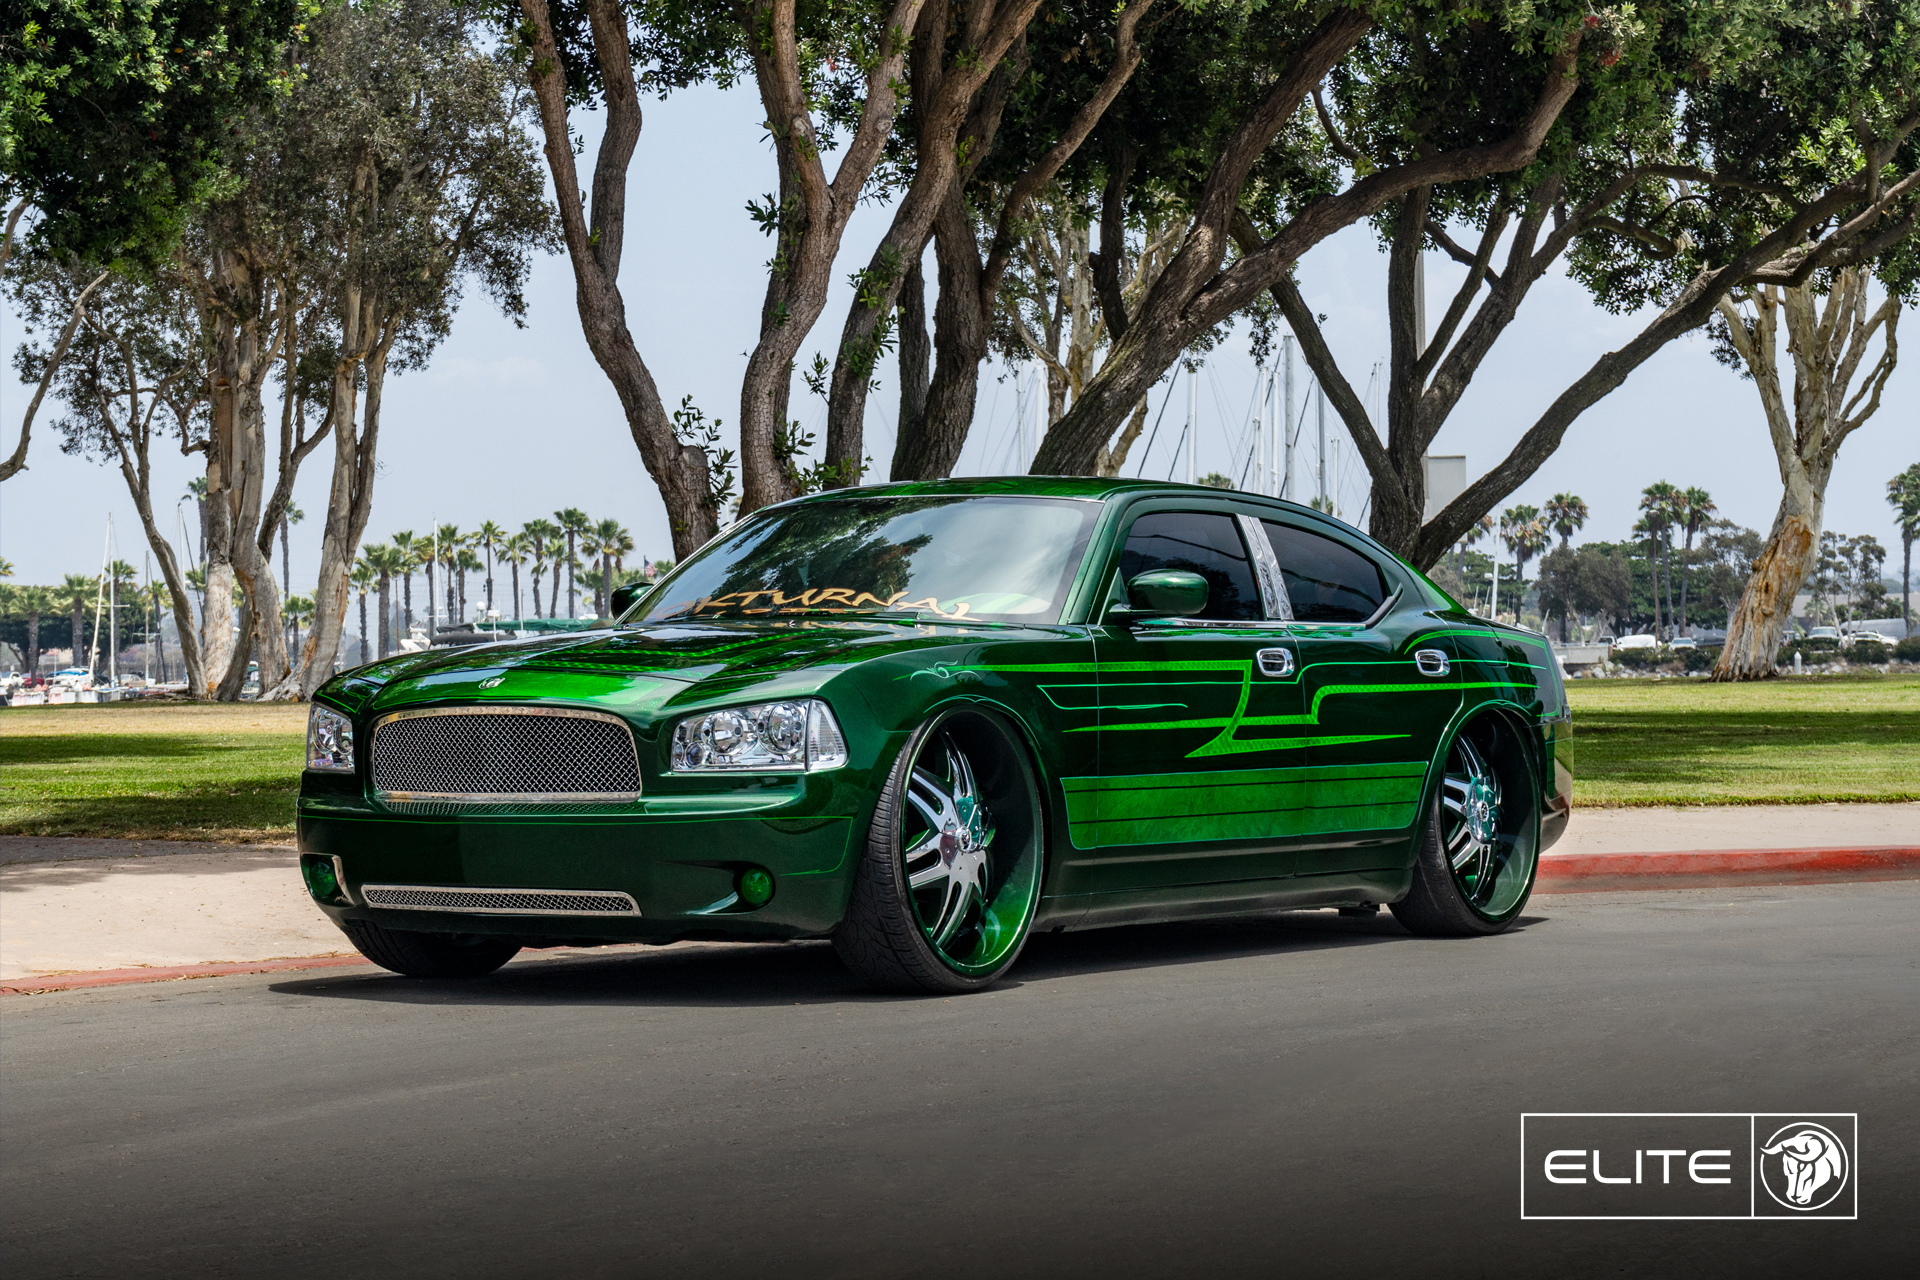 Elite Diablo Wheels Custom Dodge Charger Nokturnal Car Club